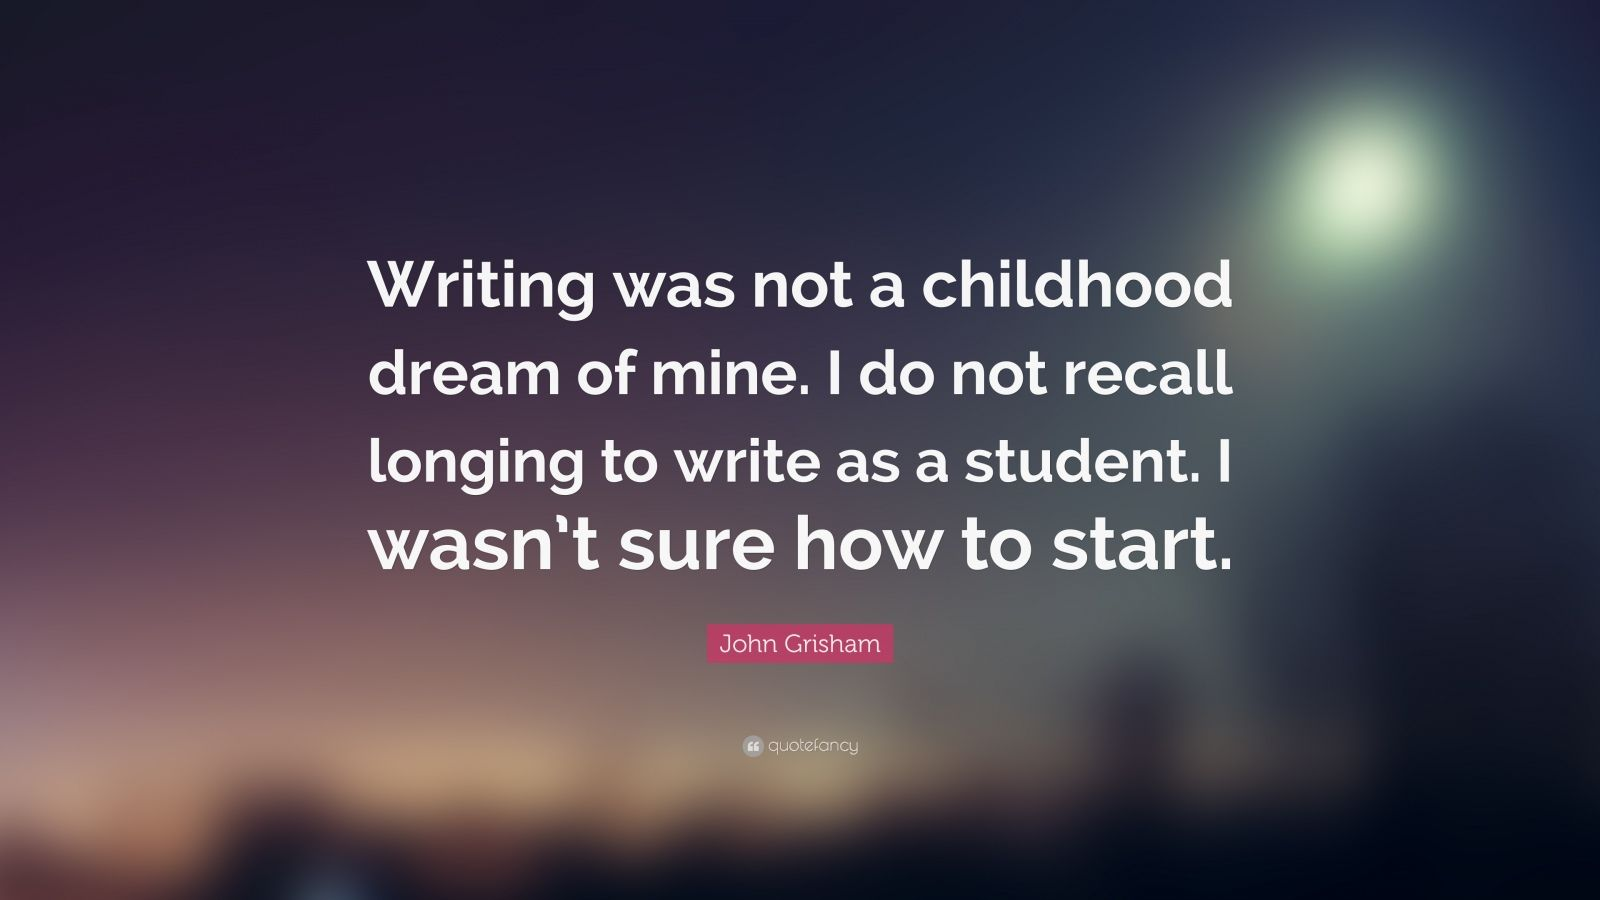 """John Grisham Quote: """"Writing was not a childhood dream of mine. I do not recall longing to write as a student. I wasn't sure how to start."""""""